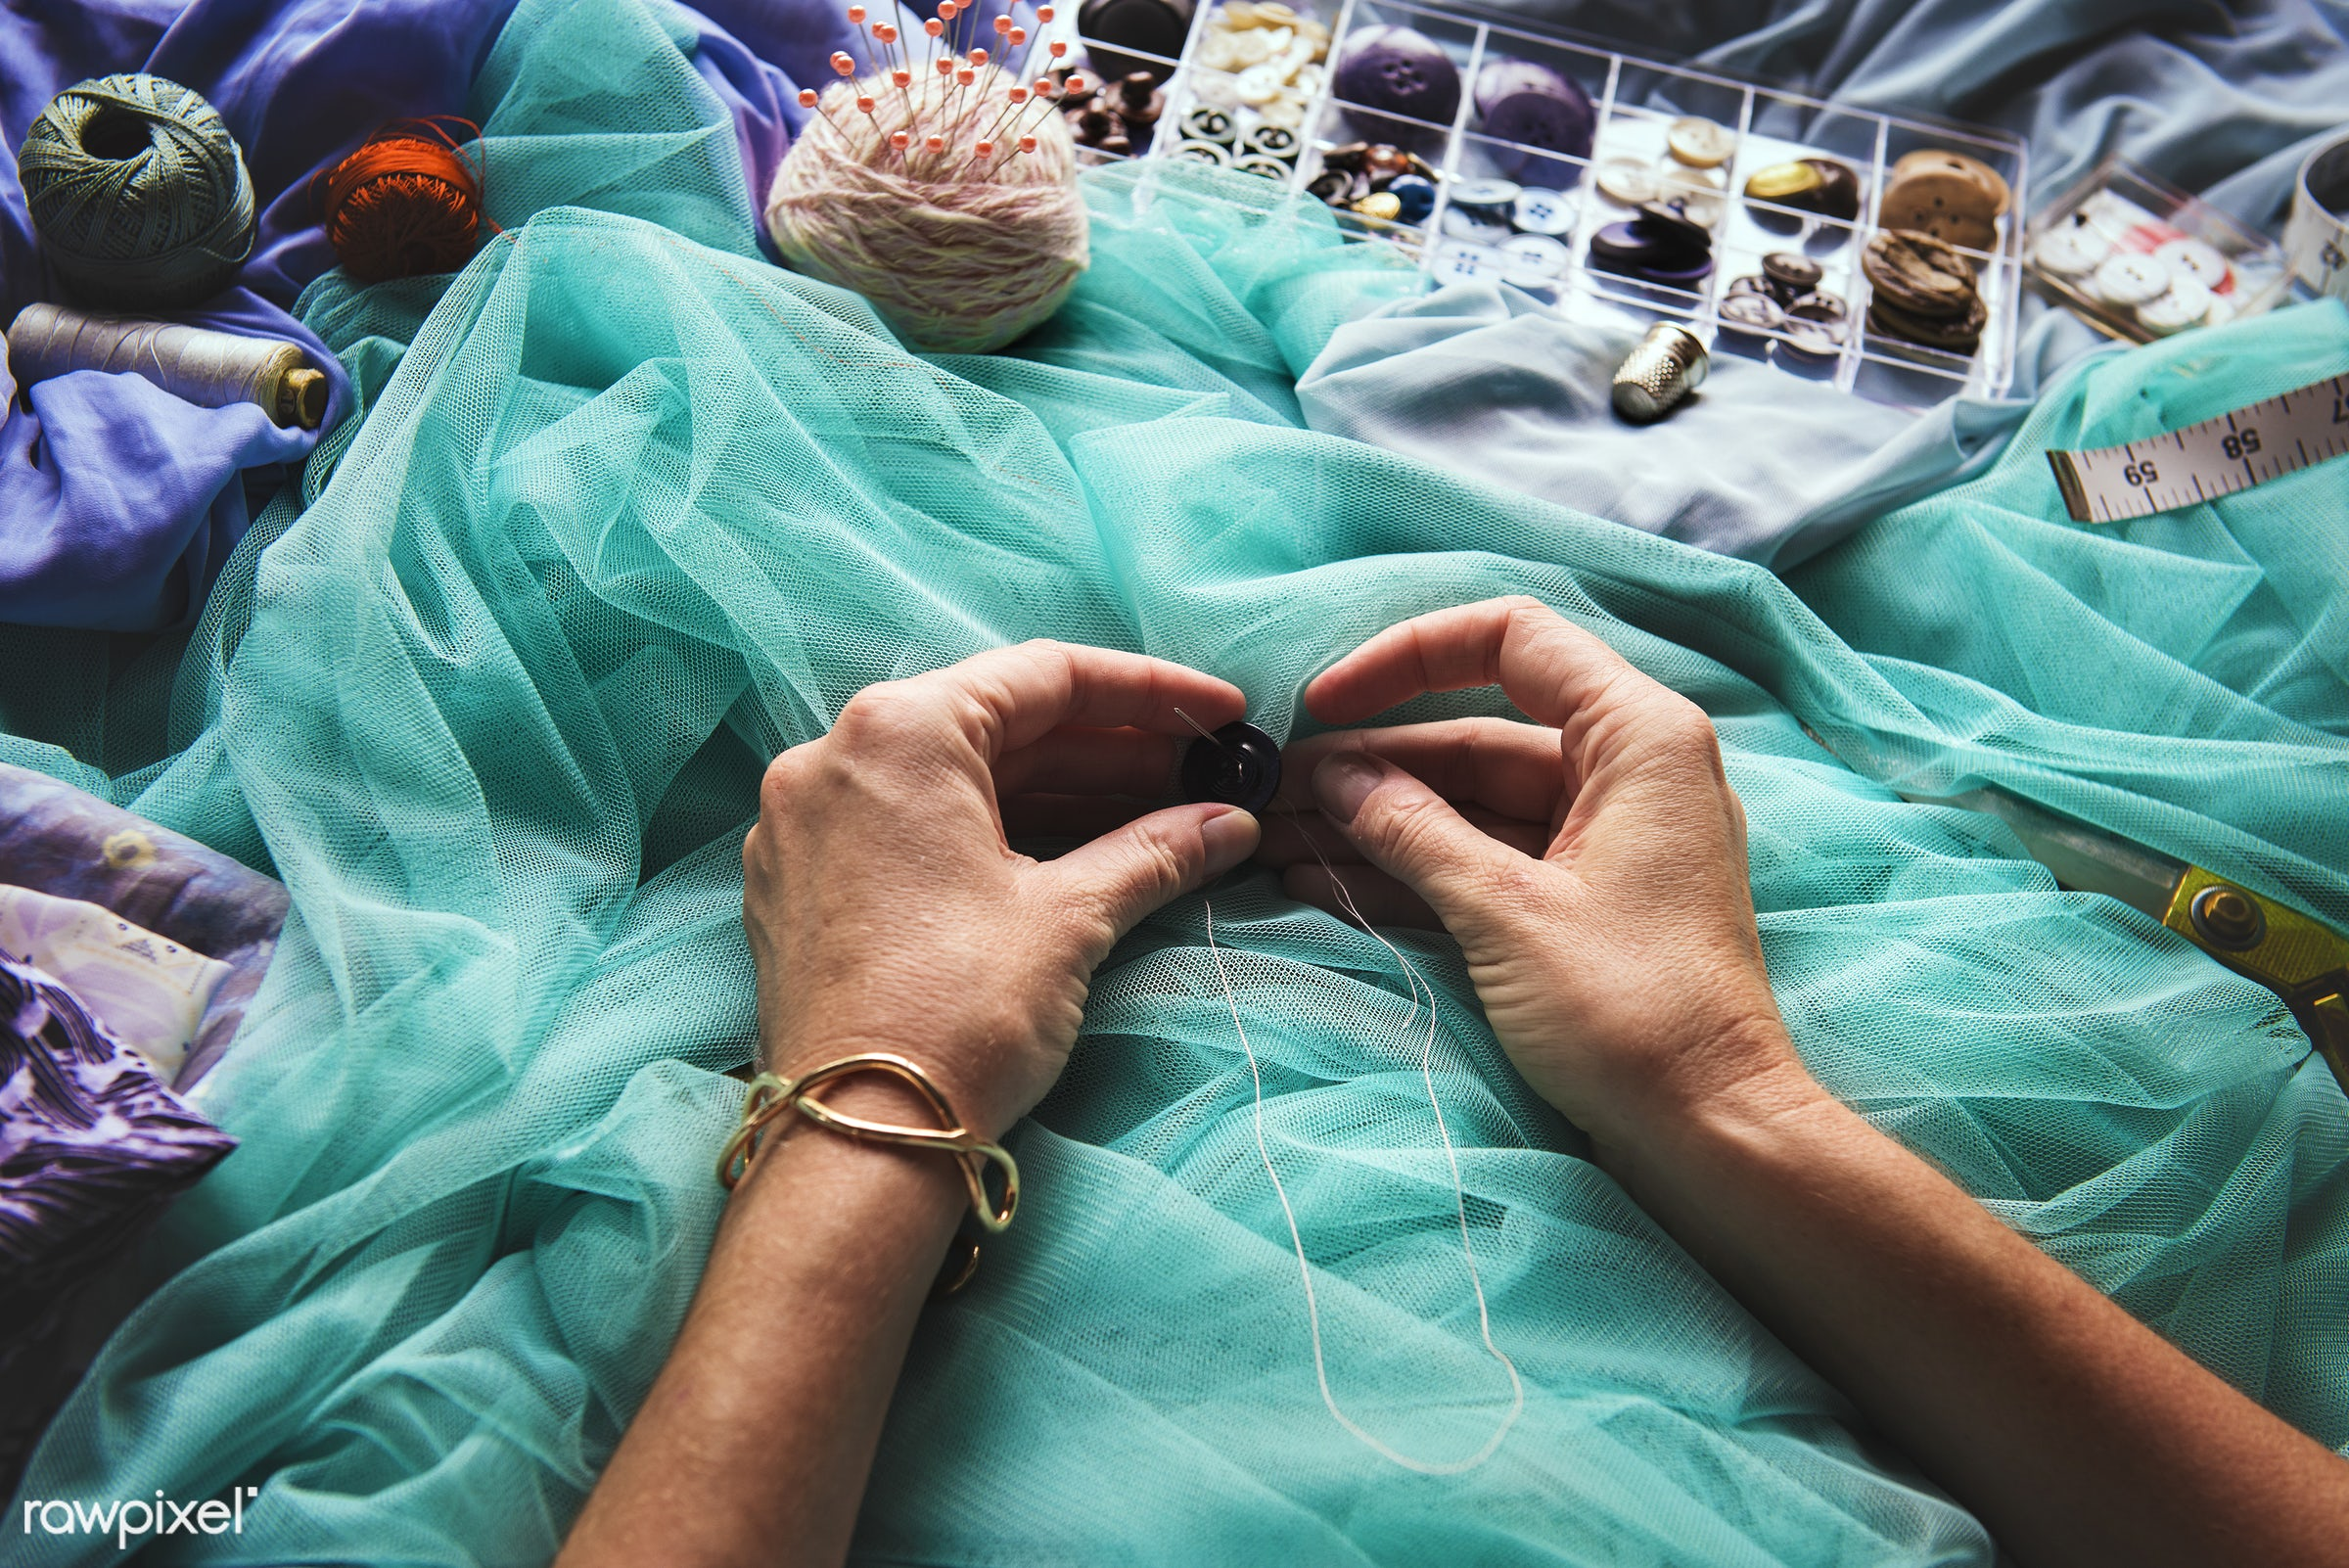 workspace, handicraft, workplace, stitching, equipment, tools, cloth, button, hands, woman, thread, lifestyle, making,...